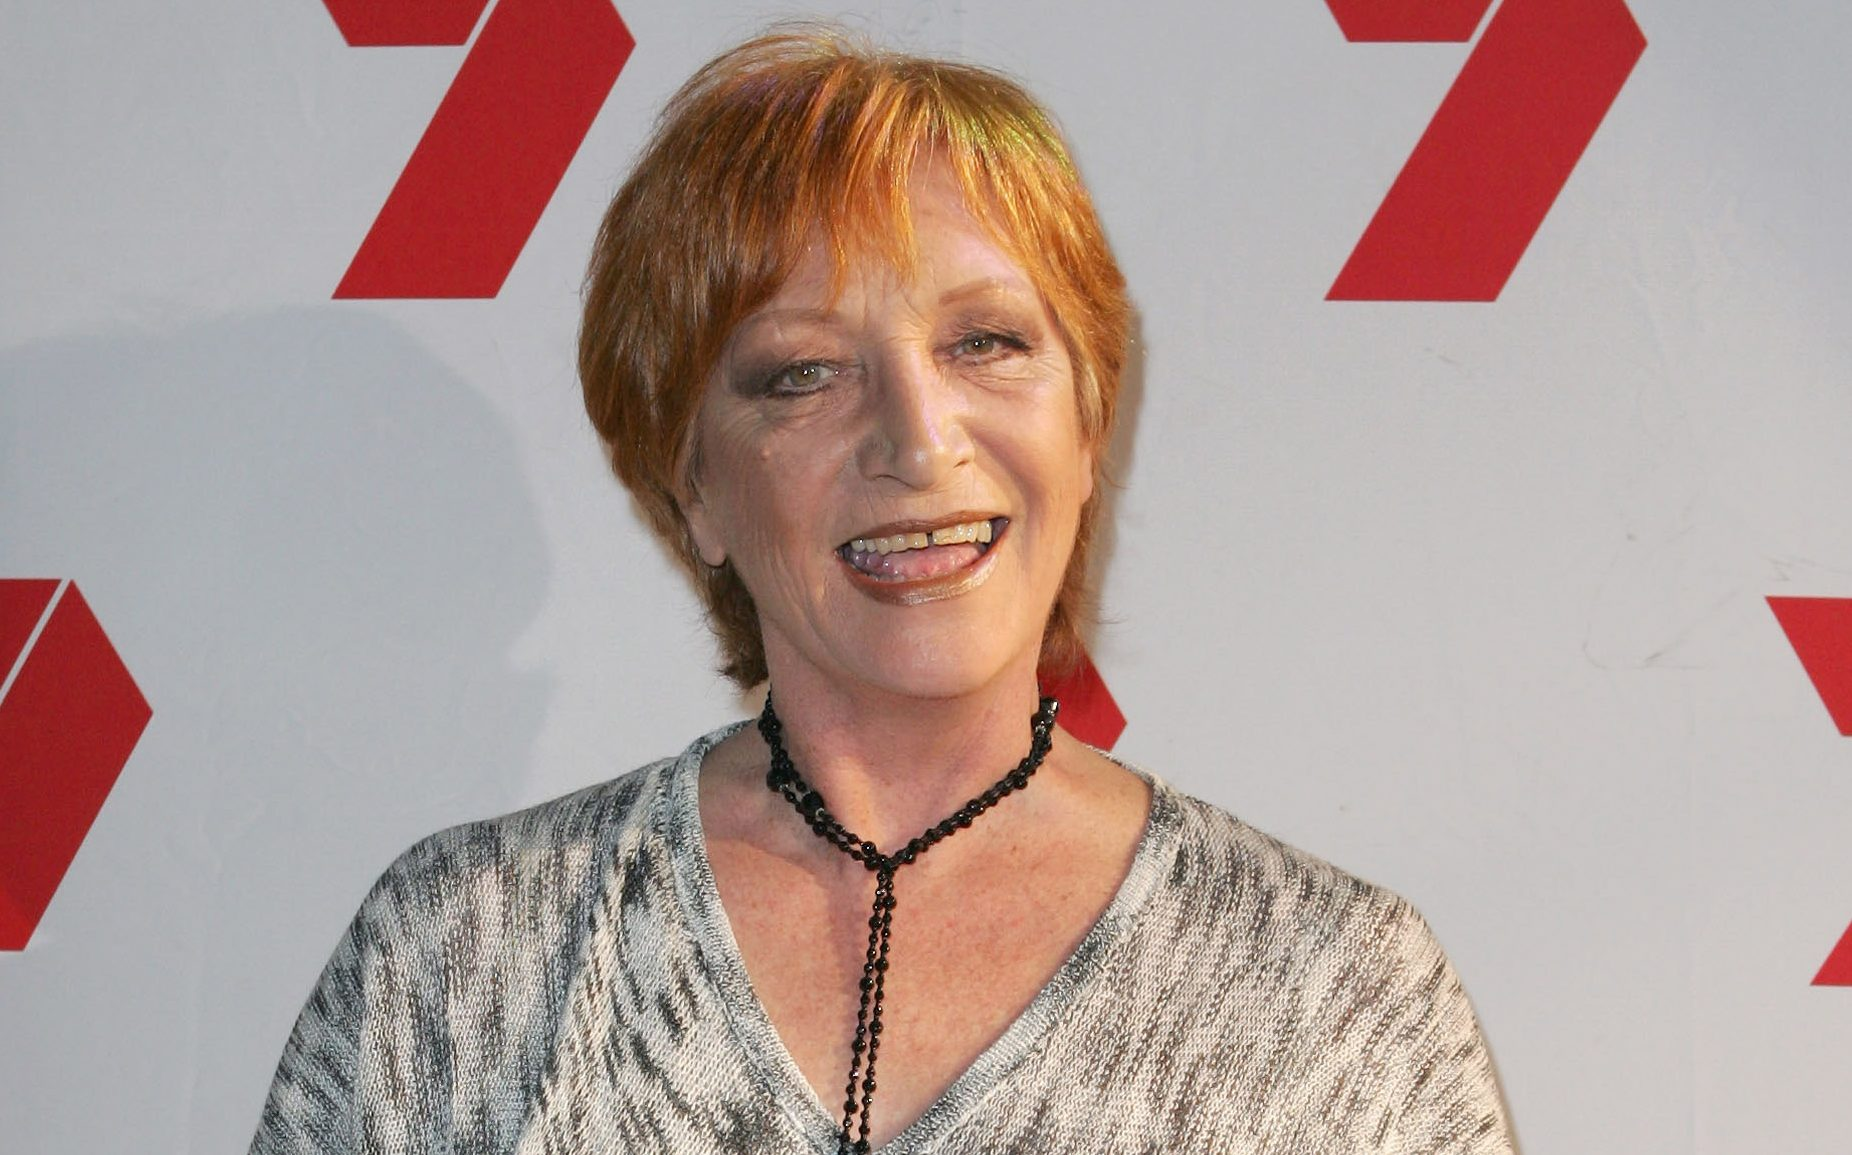 Home And Away legend Cornelia Frances was born in Liverpool, England before emigrating to Australia